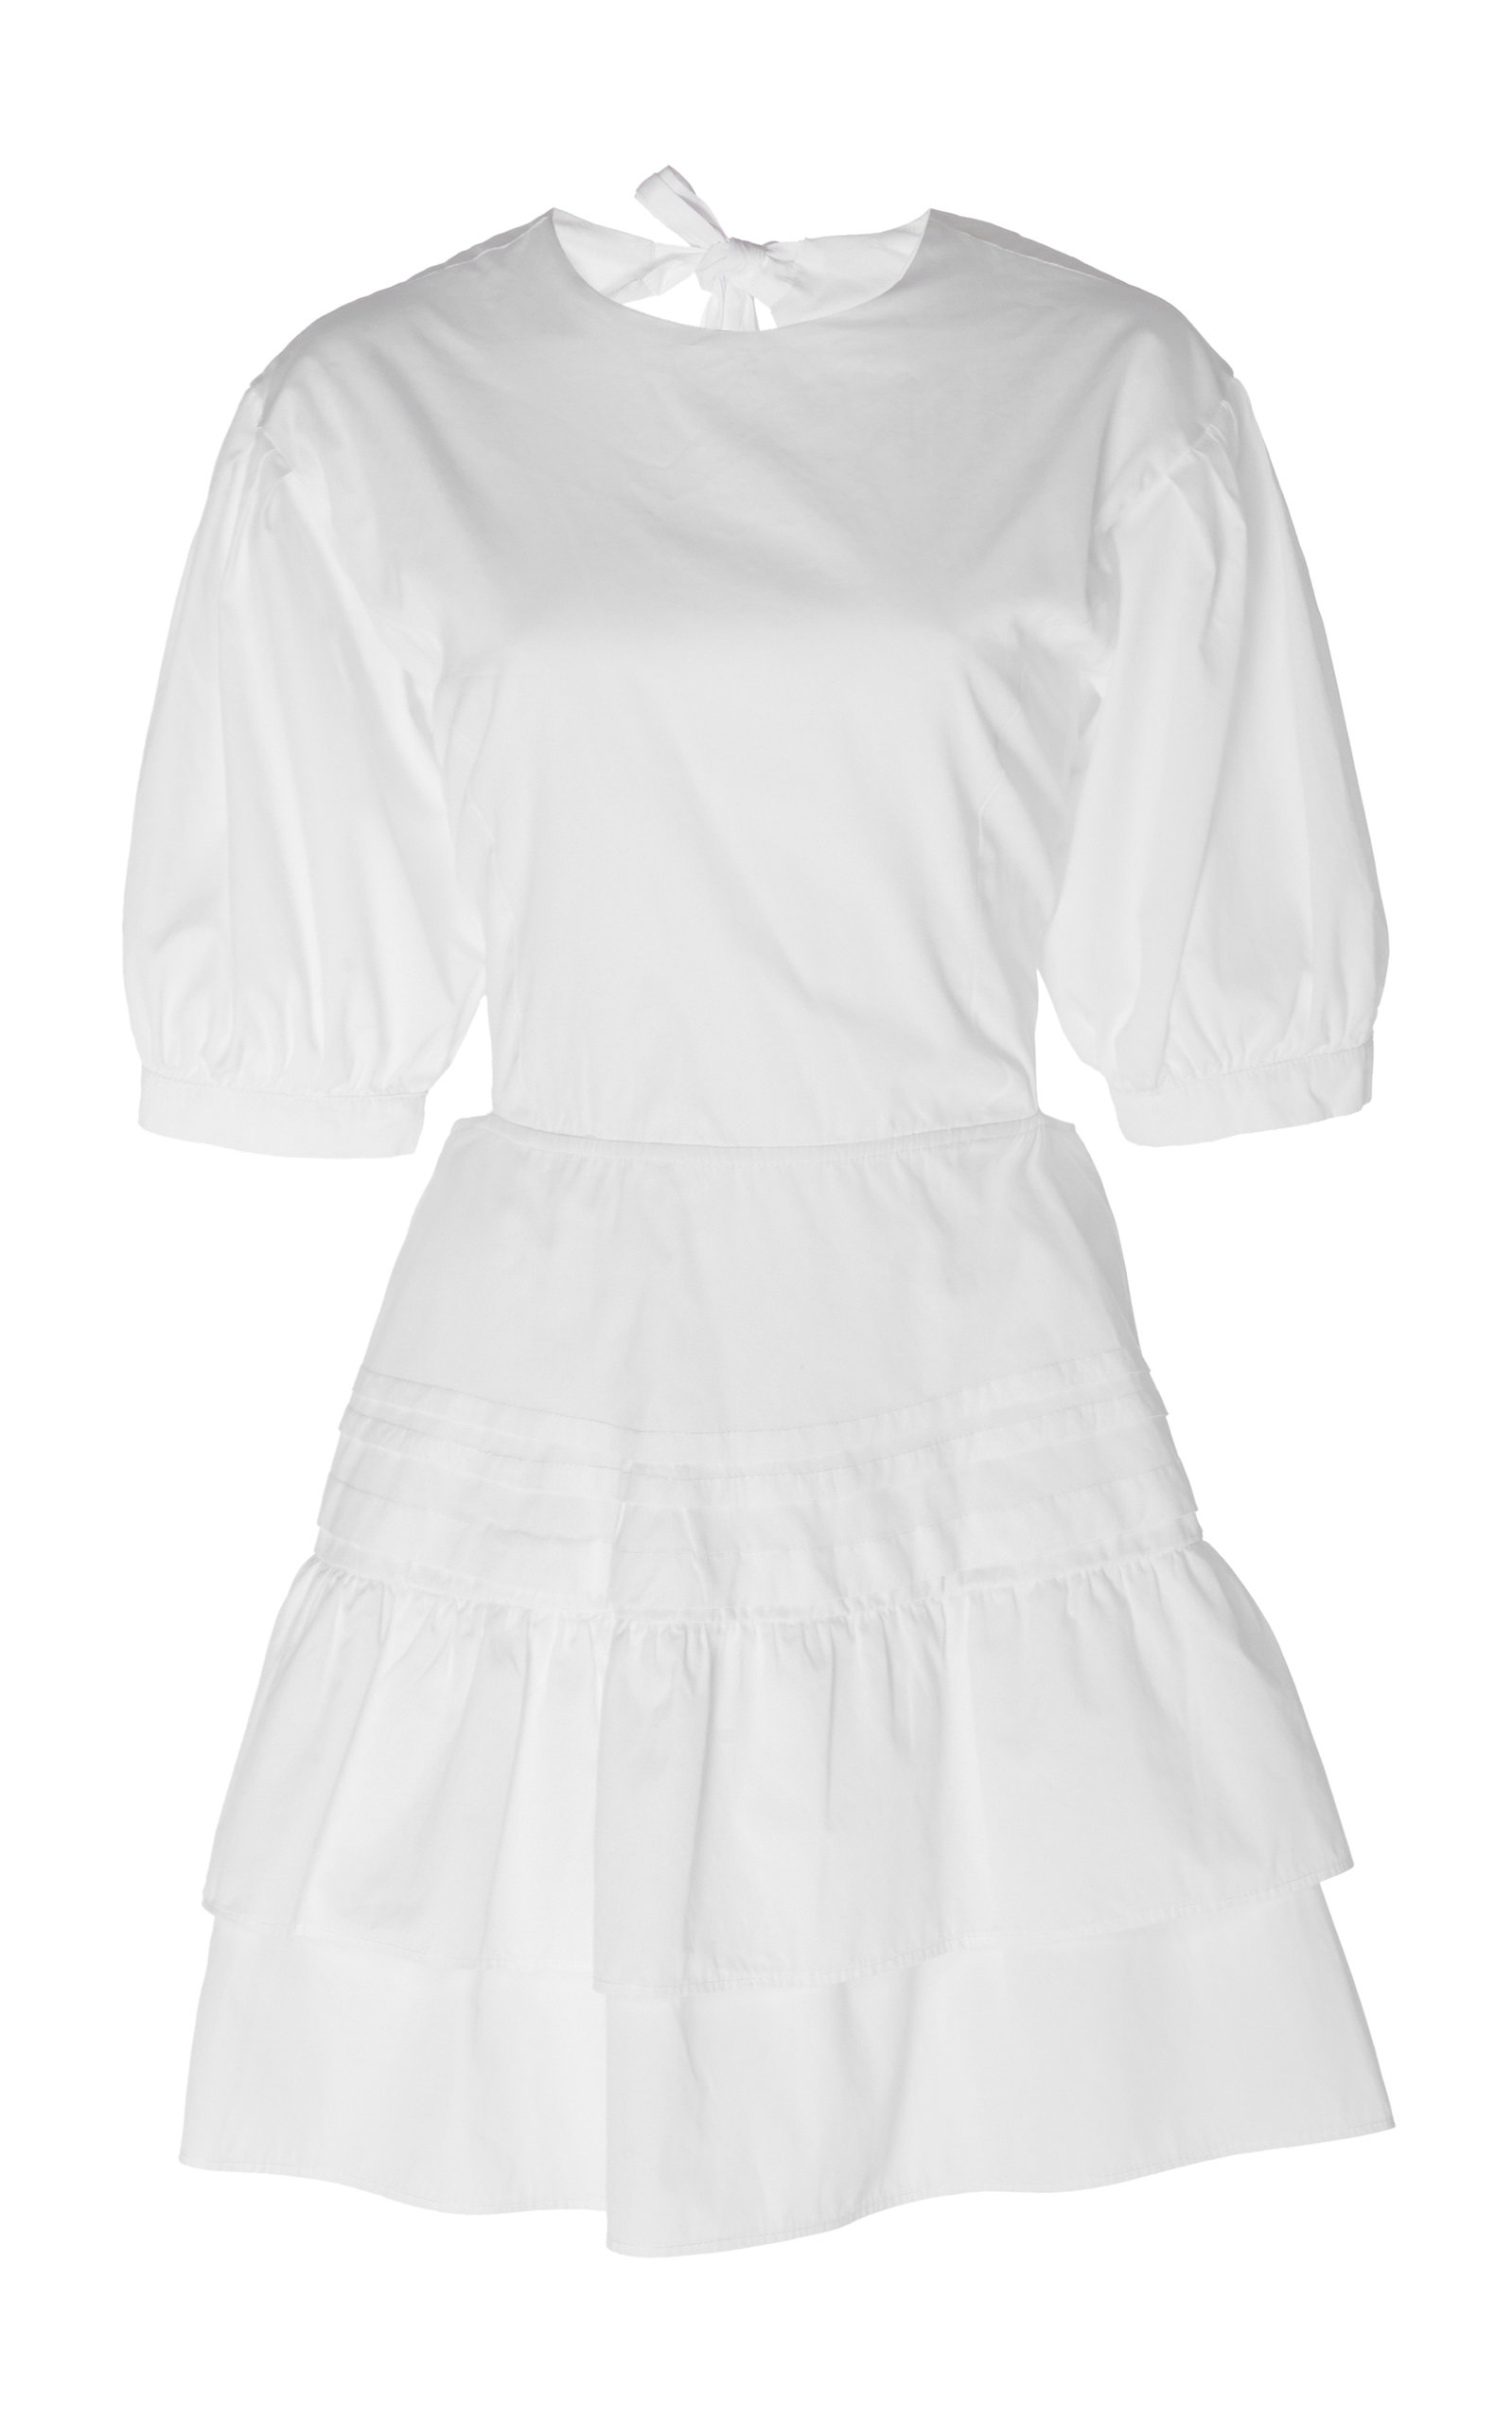 Buy Sir The Label Delilah Lace-Up Cotton-Poplin Mini Dress online, shop Sir The Label at the best price